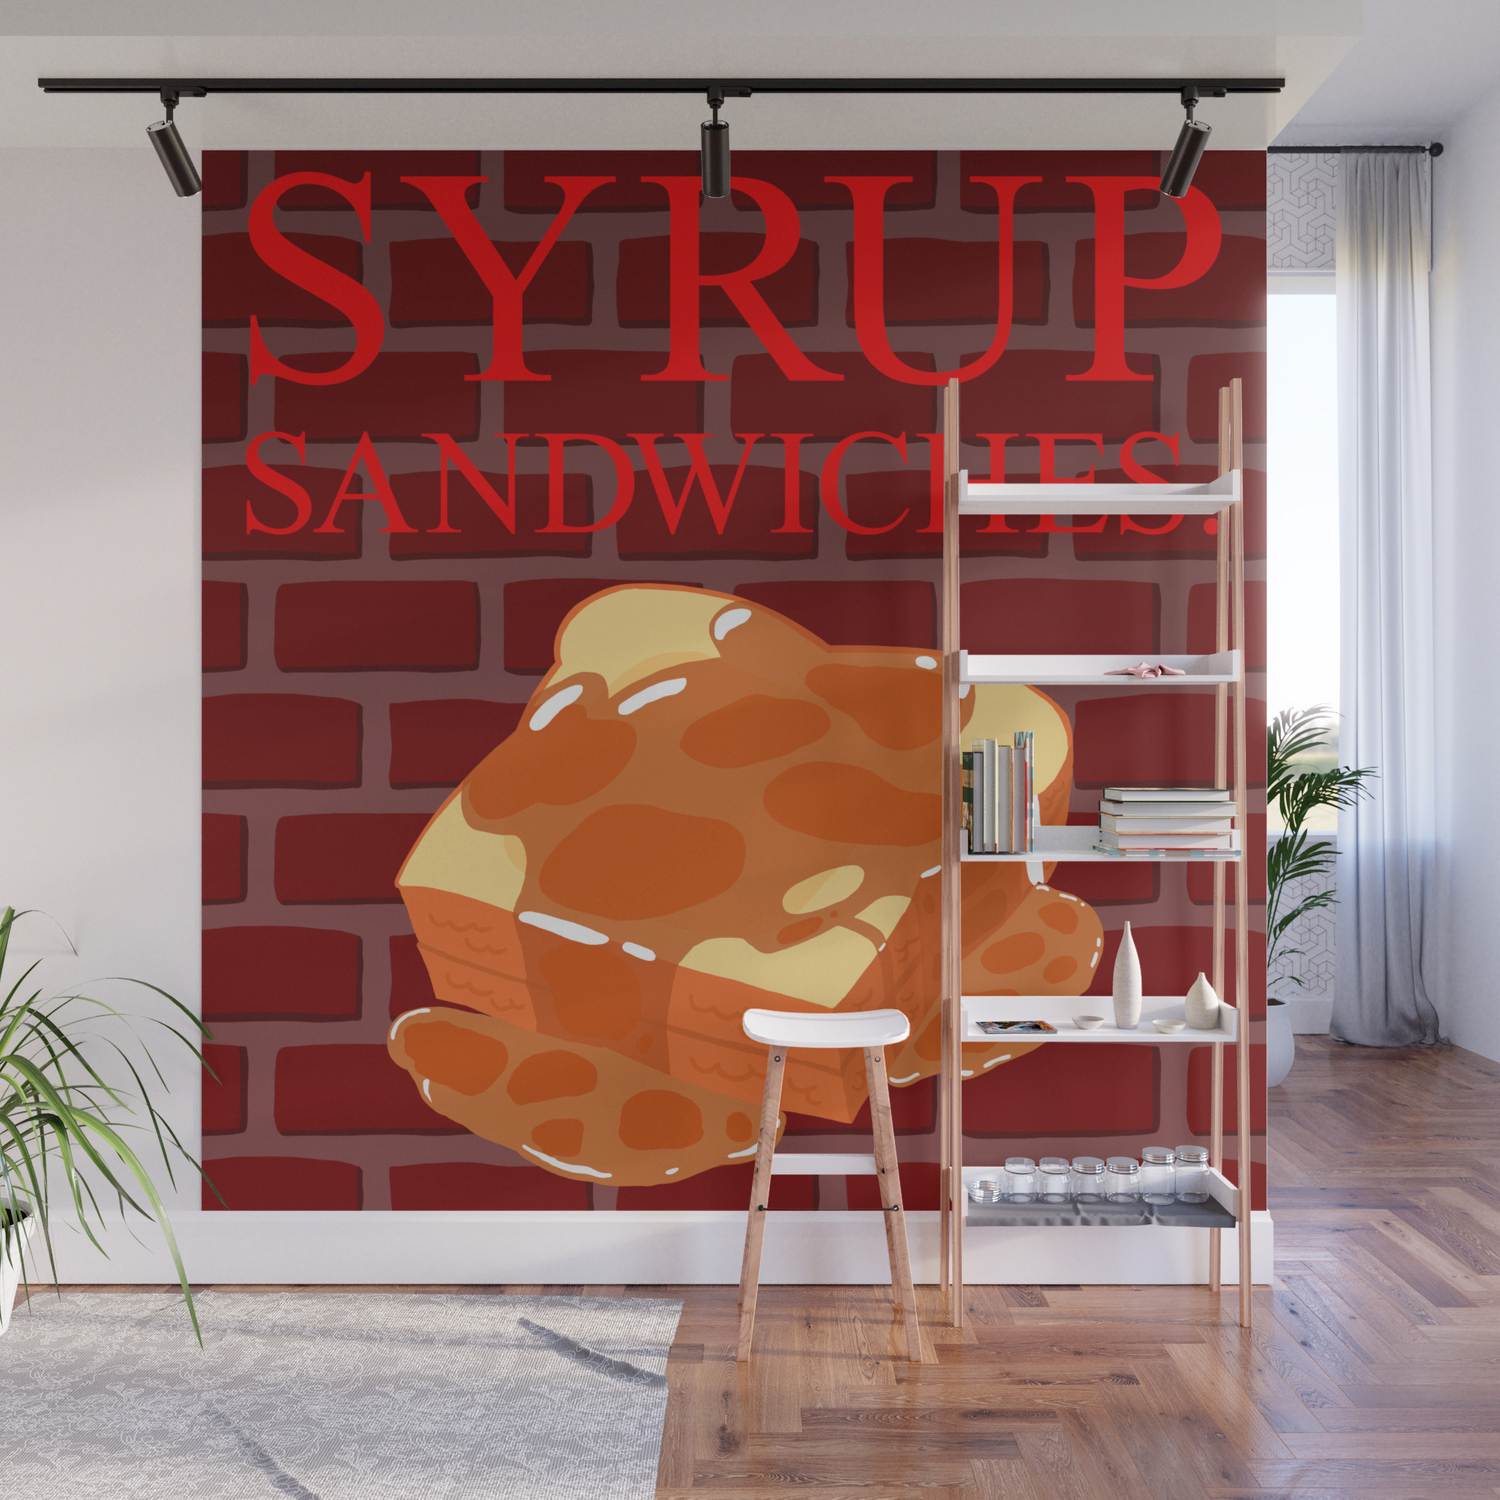 Syrup Sandwiches Wall Mural By Nerdwaffles Society6 Feel free to substitute your favorite bread. syrup sandwiches wall mural by nerdwaffles